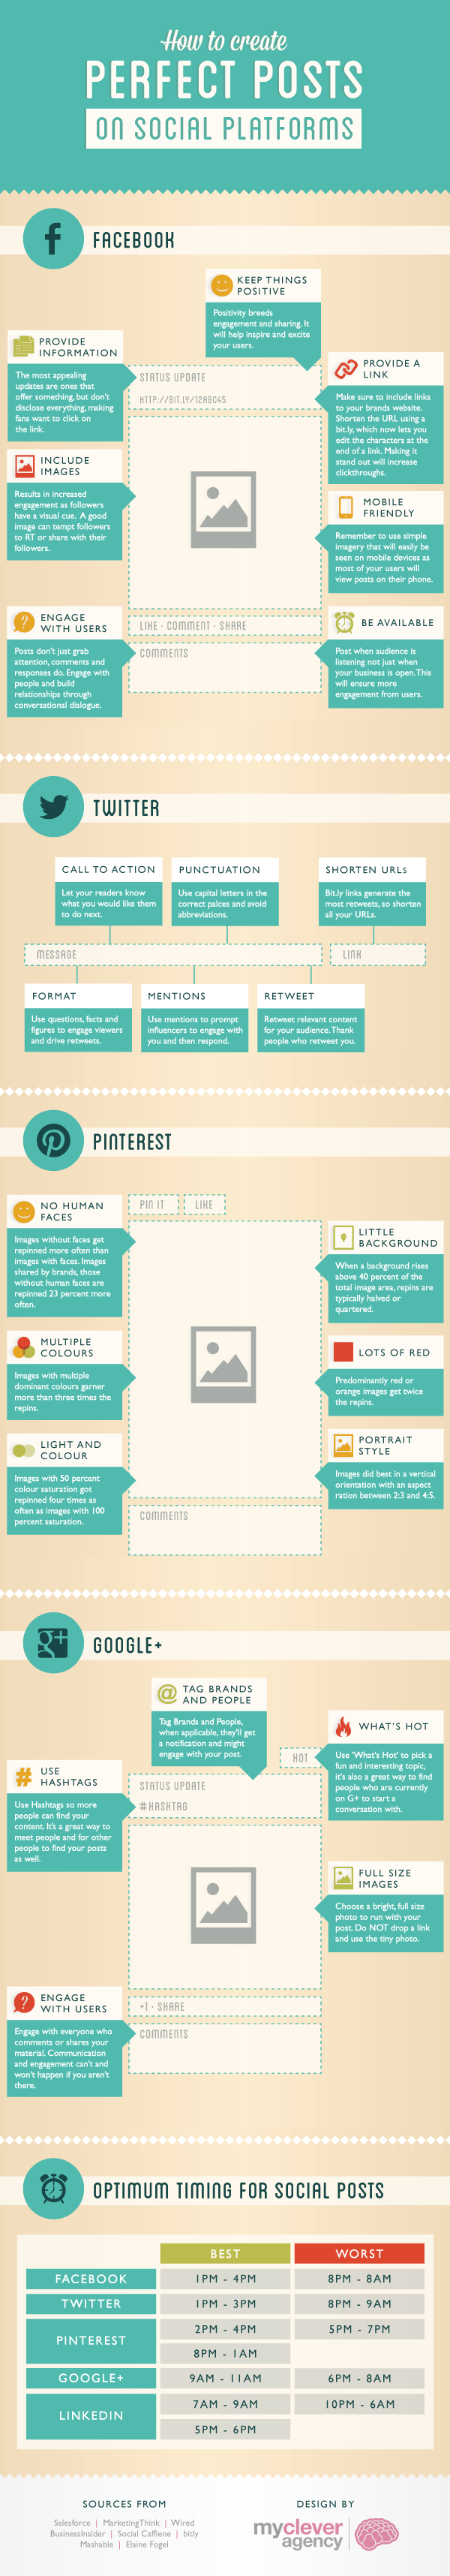 How to Create Perfect Posts on Social Media Platforms ...